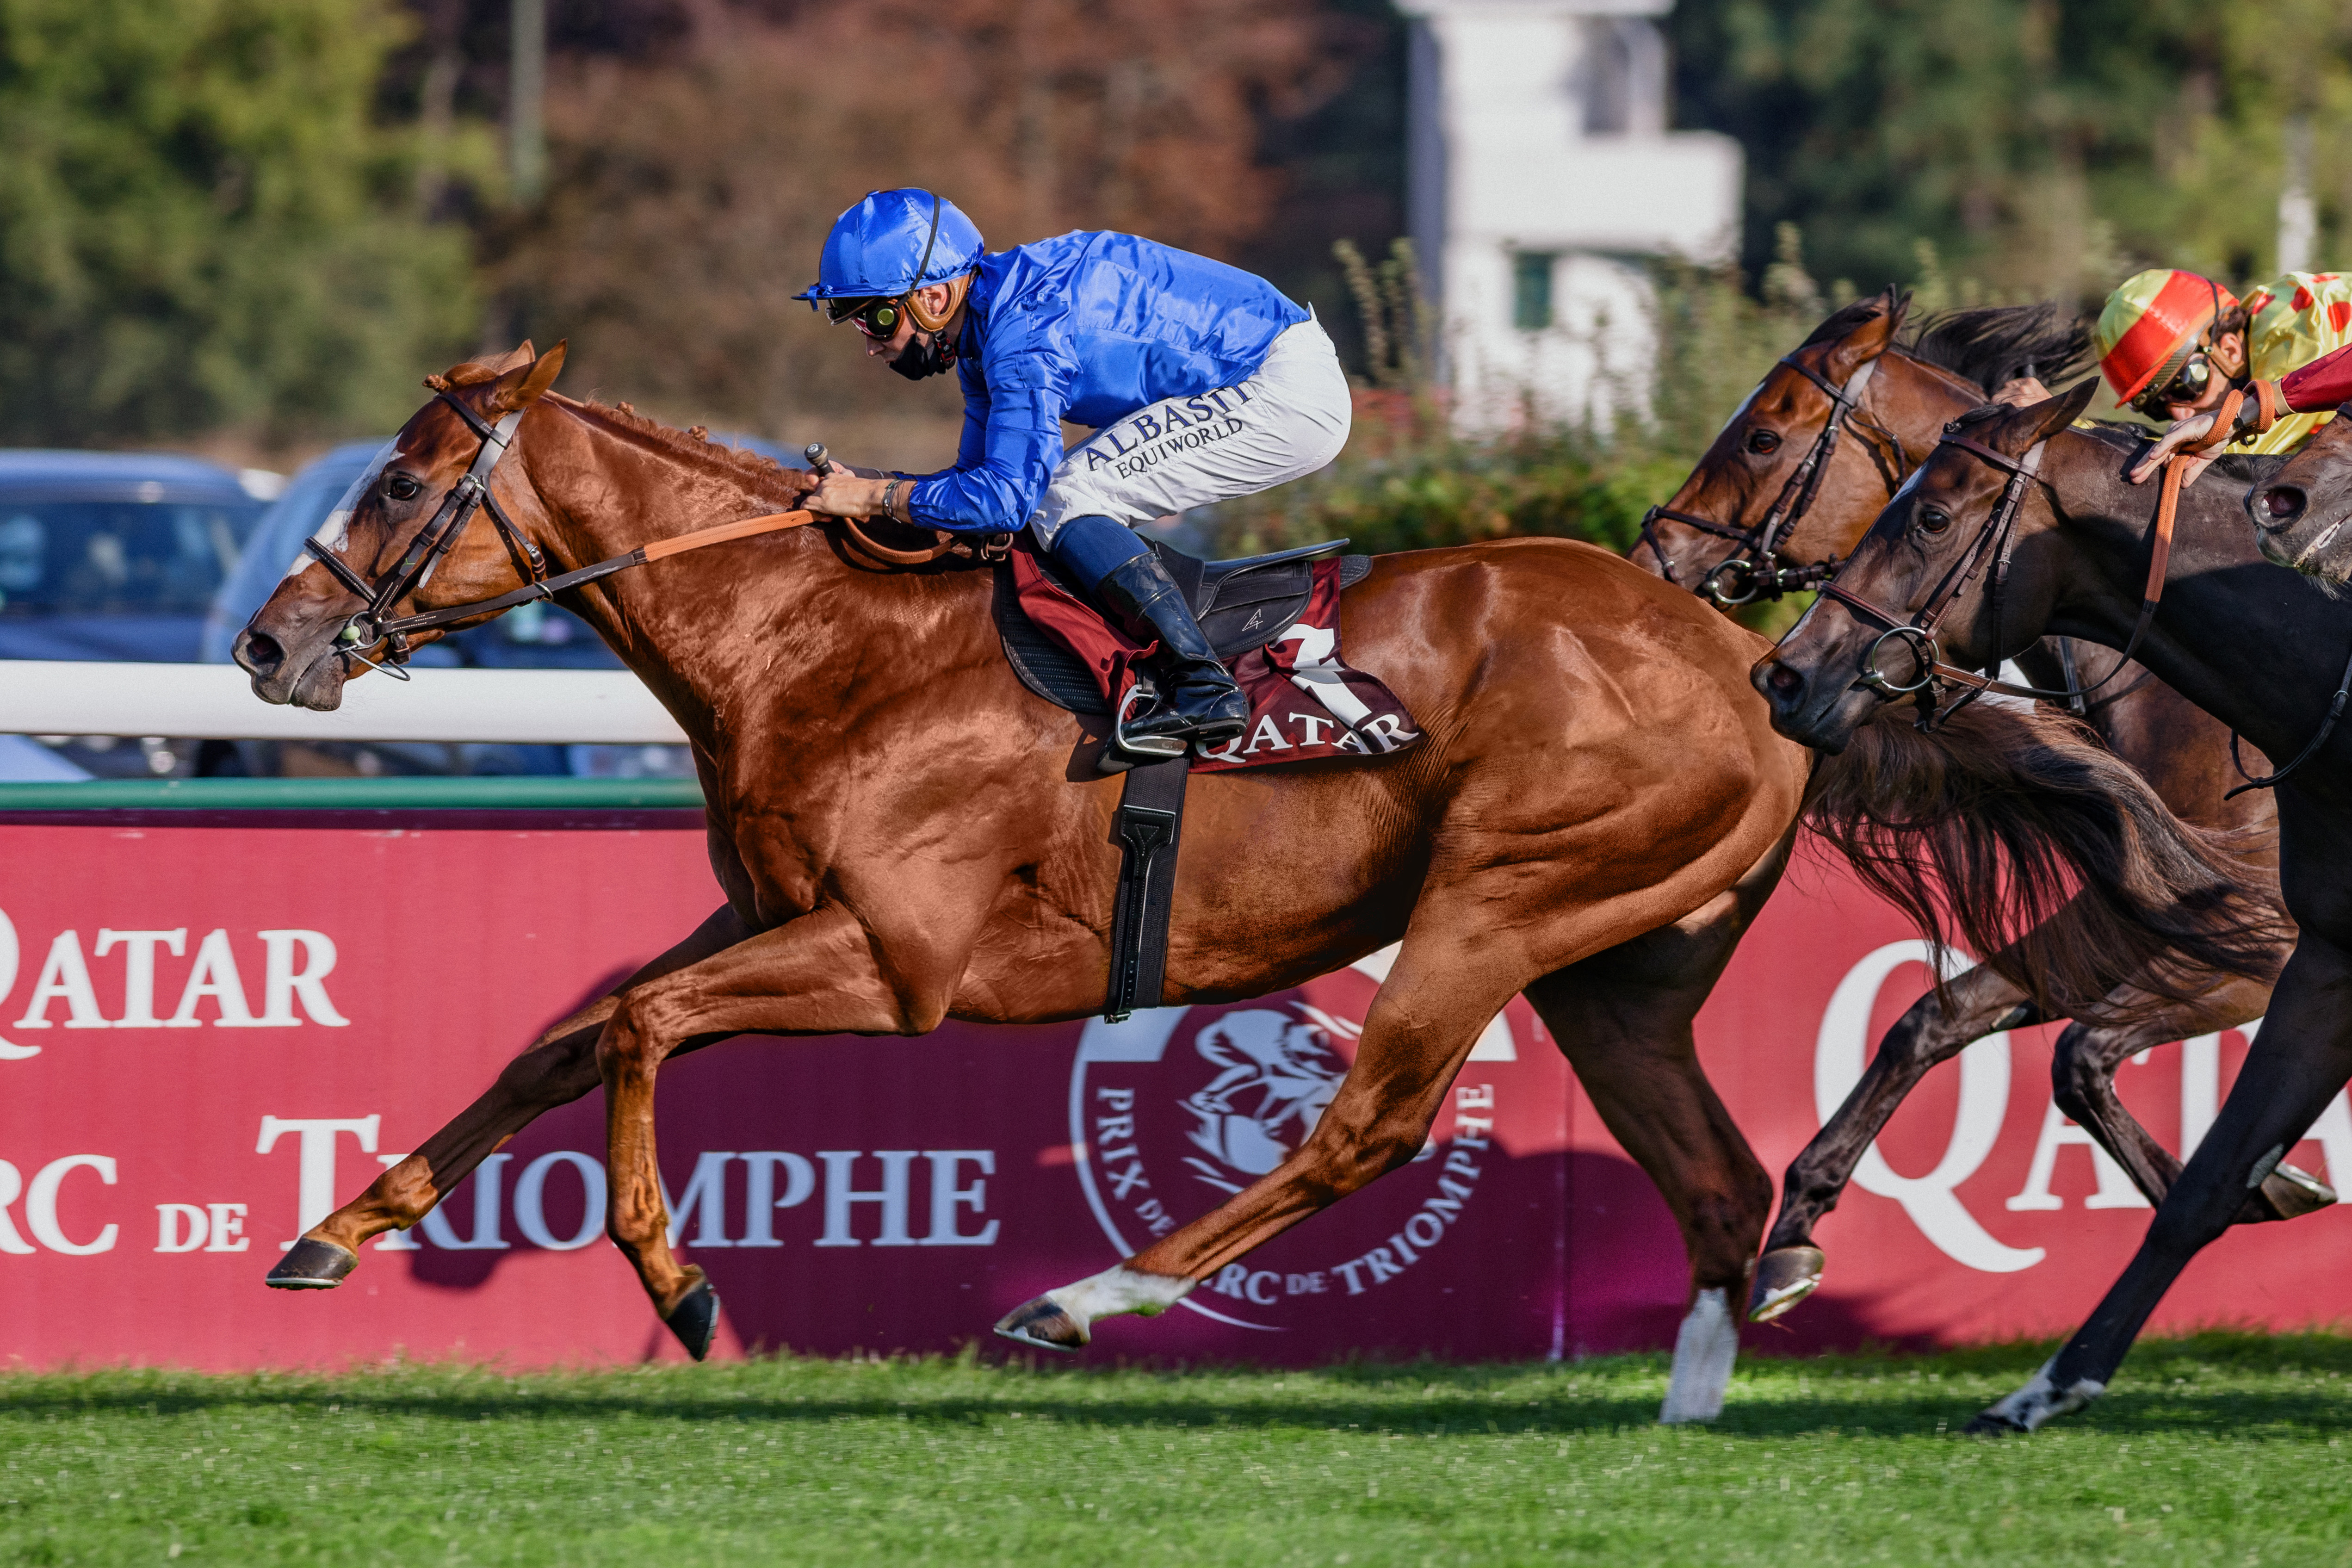 """Earthlight  (M Barzalona) wins Qatar Prix du Pin Gr.3 in ParisLongchamp 13/09/20, Photo Zuzanna Lupa / Racingfotos.com  THIS IMAGE IS SOURCED FROM AND MUST BE BYLINED """"RACINGFOTOS.COM"""""""